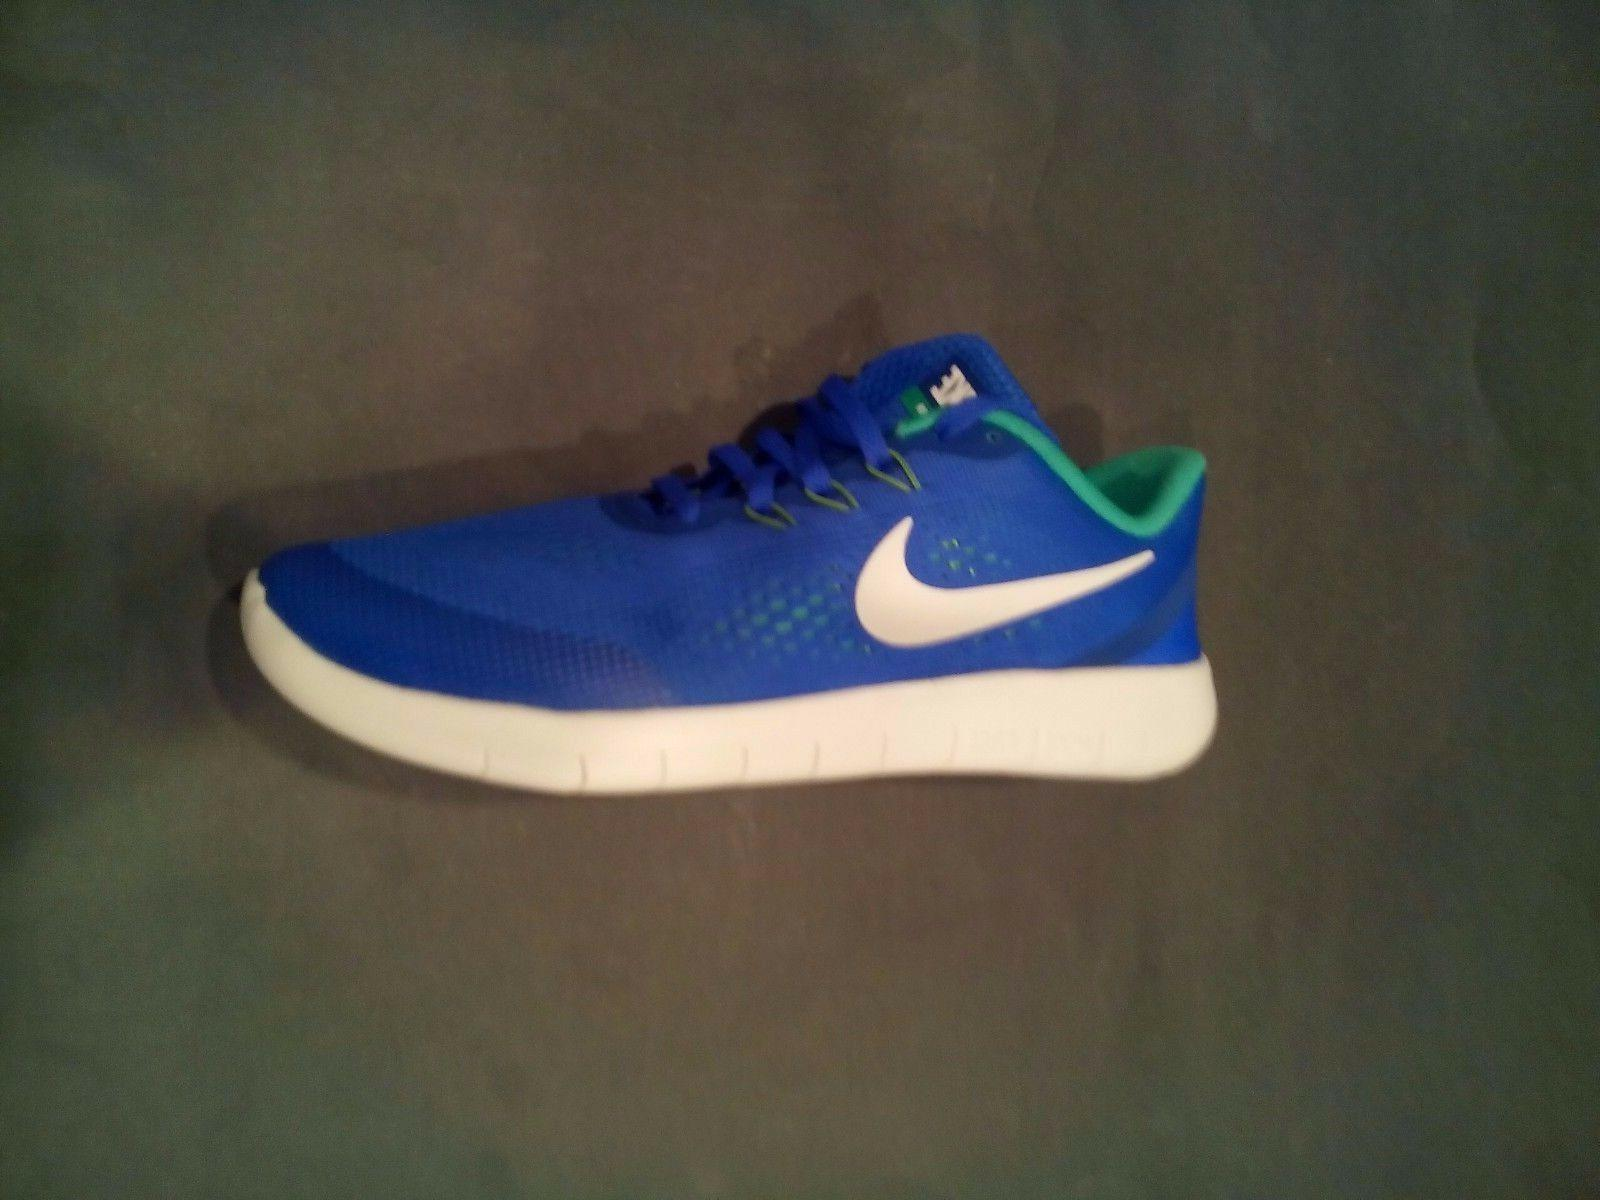 Boy's Nike 'Free Rn' Running Shoe, Size 7 M - Blue